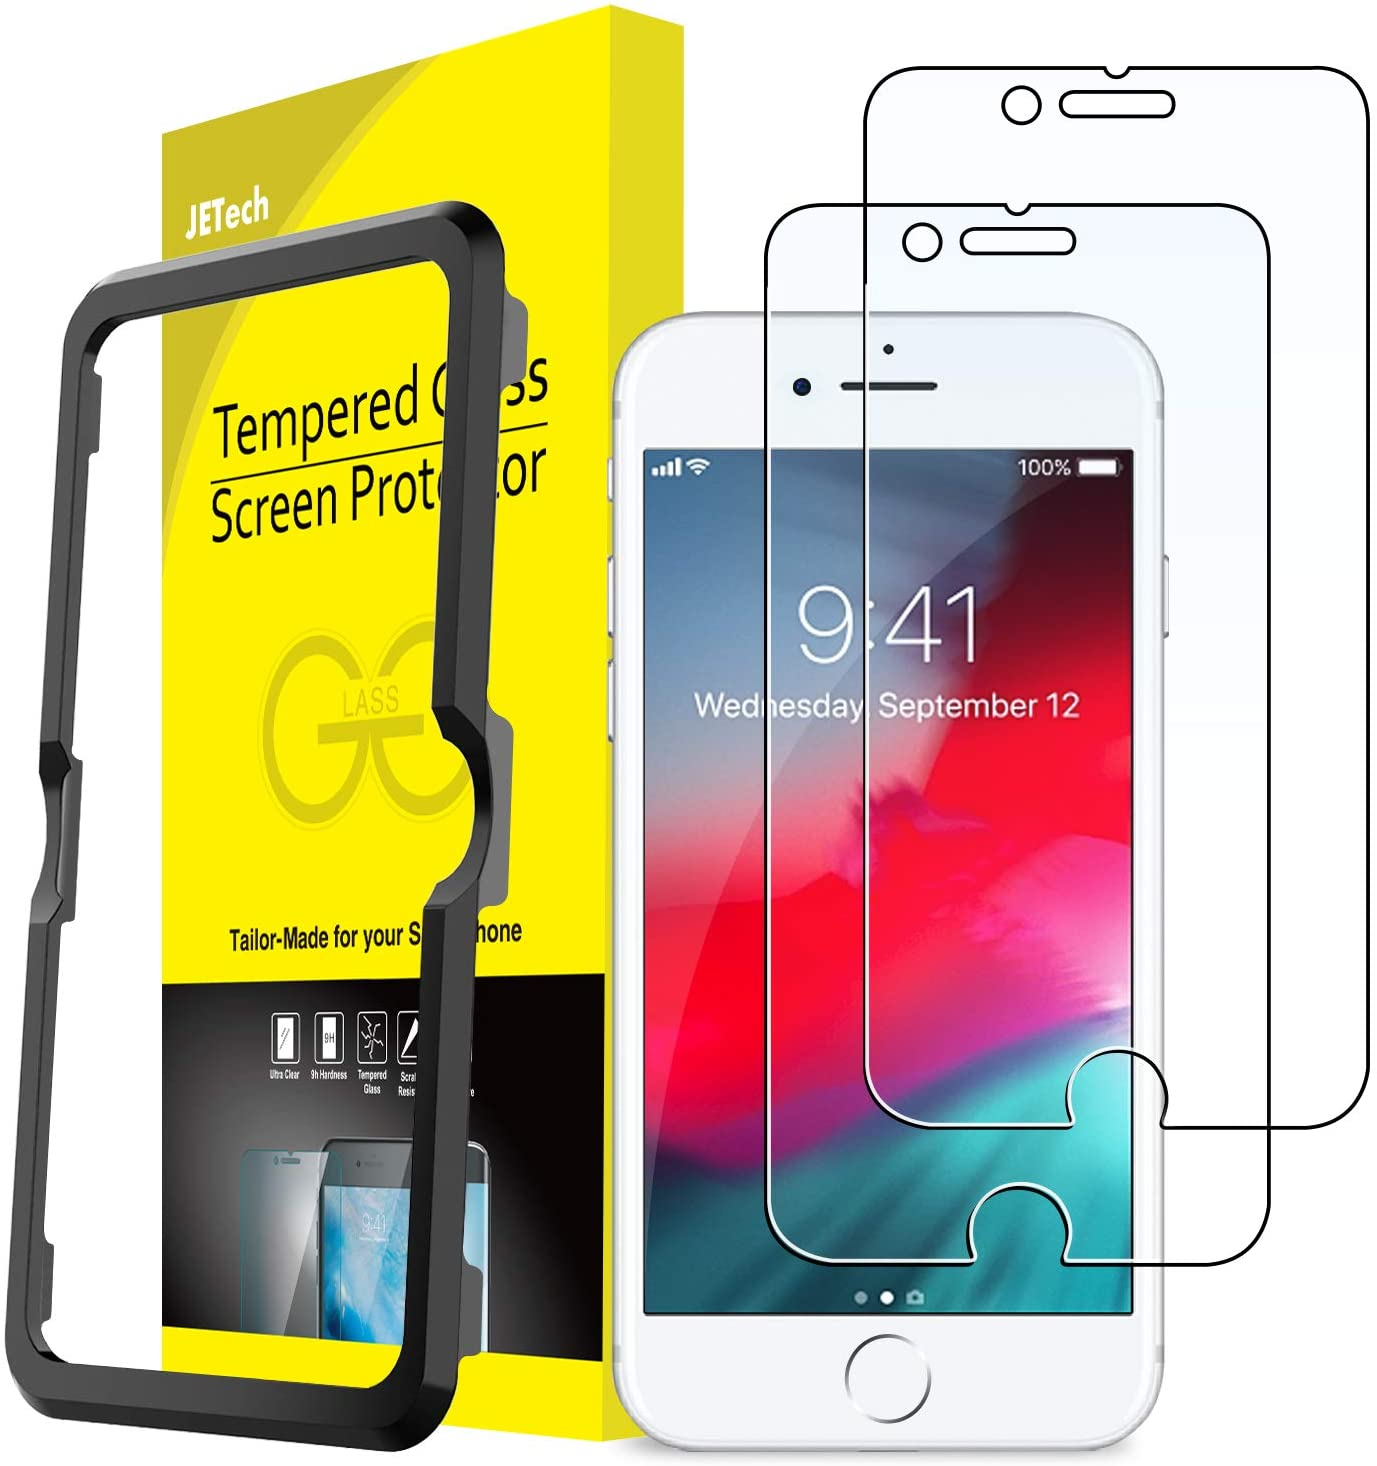 JETech Screen Protector for iPhone SE 2020, iPhone 8/7, iPhone 6s/6, 4.7-Inch, Tempered Glass Film with Easy-Installation Tool, 2-Pack